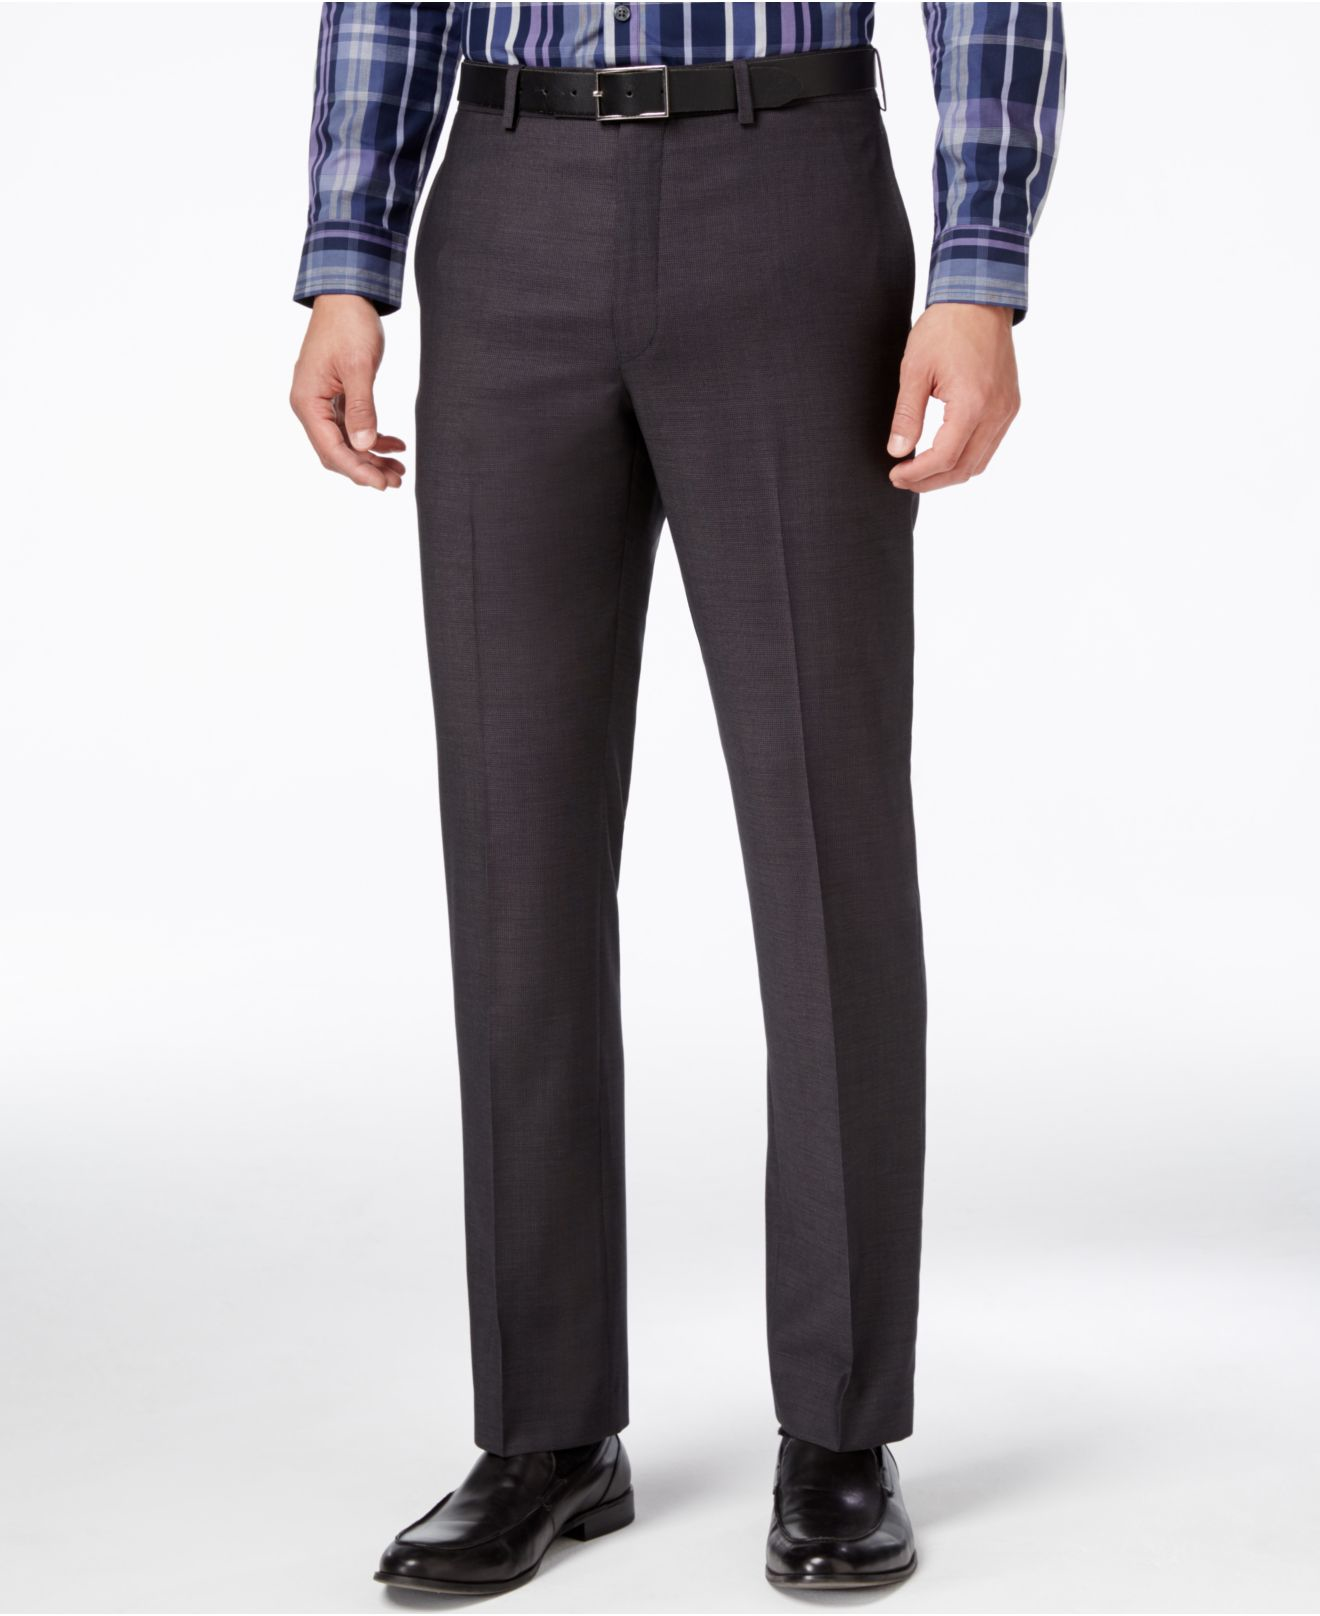 These pants are one of the best slim fit dress pants for men. Target's Merona Pinstripe Pant: These elegant pinstripe pants come in black and they feature a straight leg, zip and button front closure, a finished hem, button back pockets, two front pockets, and belt loops.